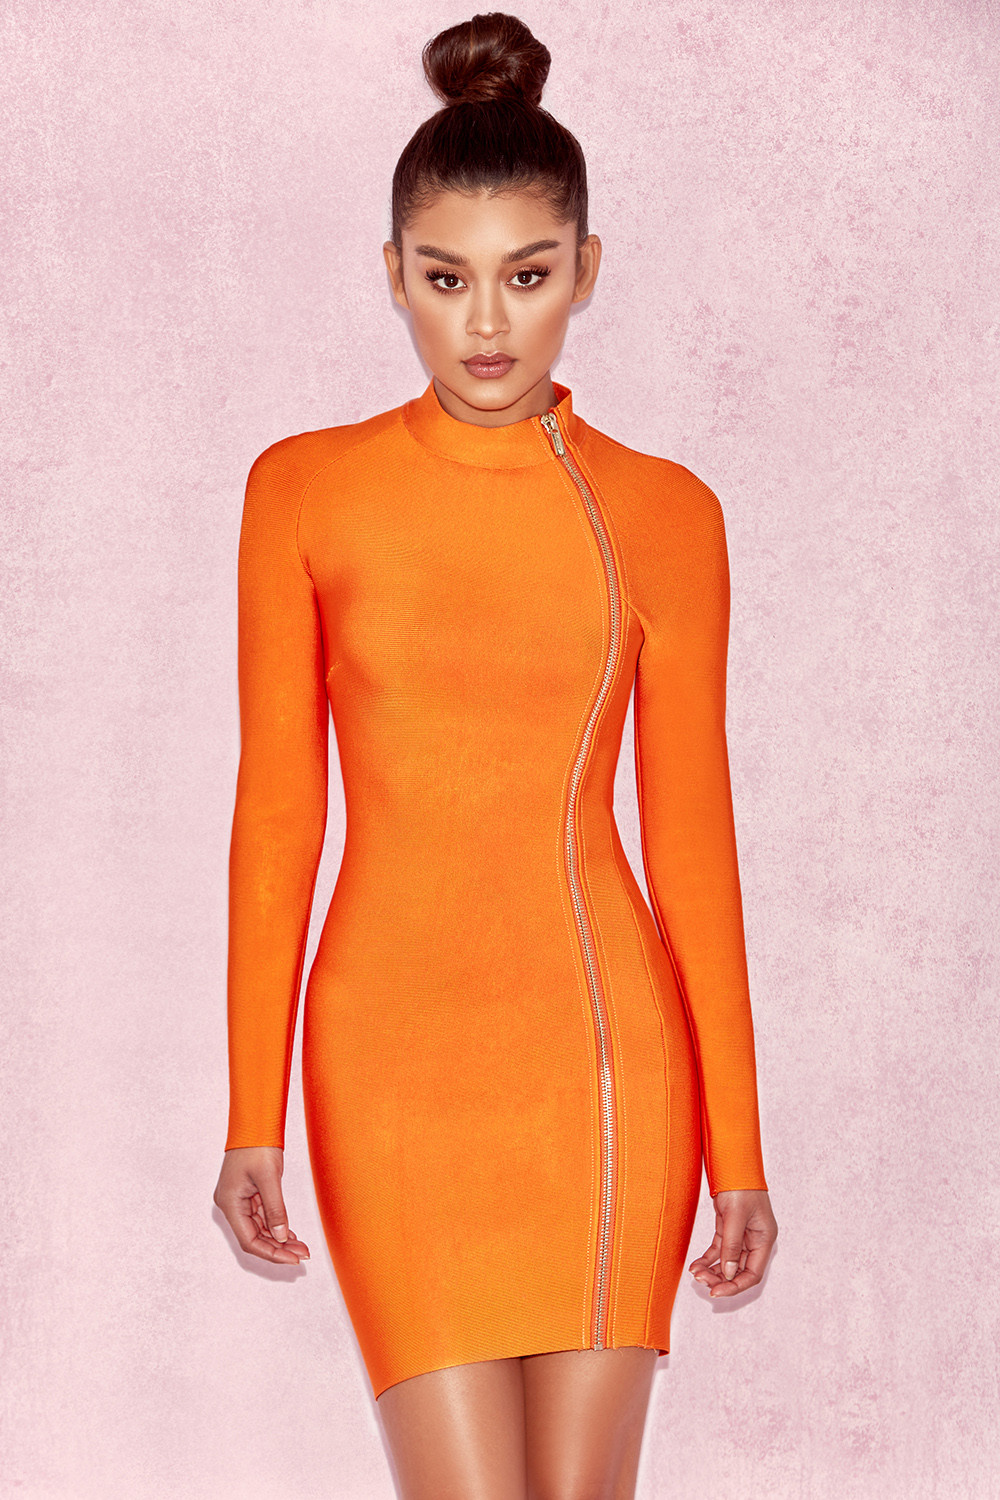 Clothing  Bandage Dresses  U0026#39;Elizau0026#39; Orange Bandage Curved Zip Mini Dress